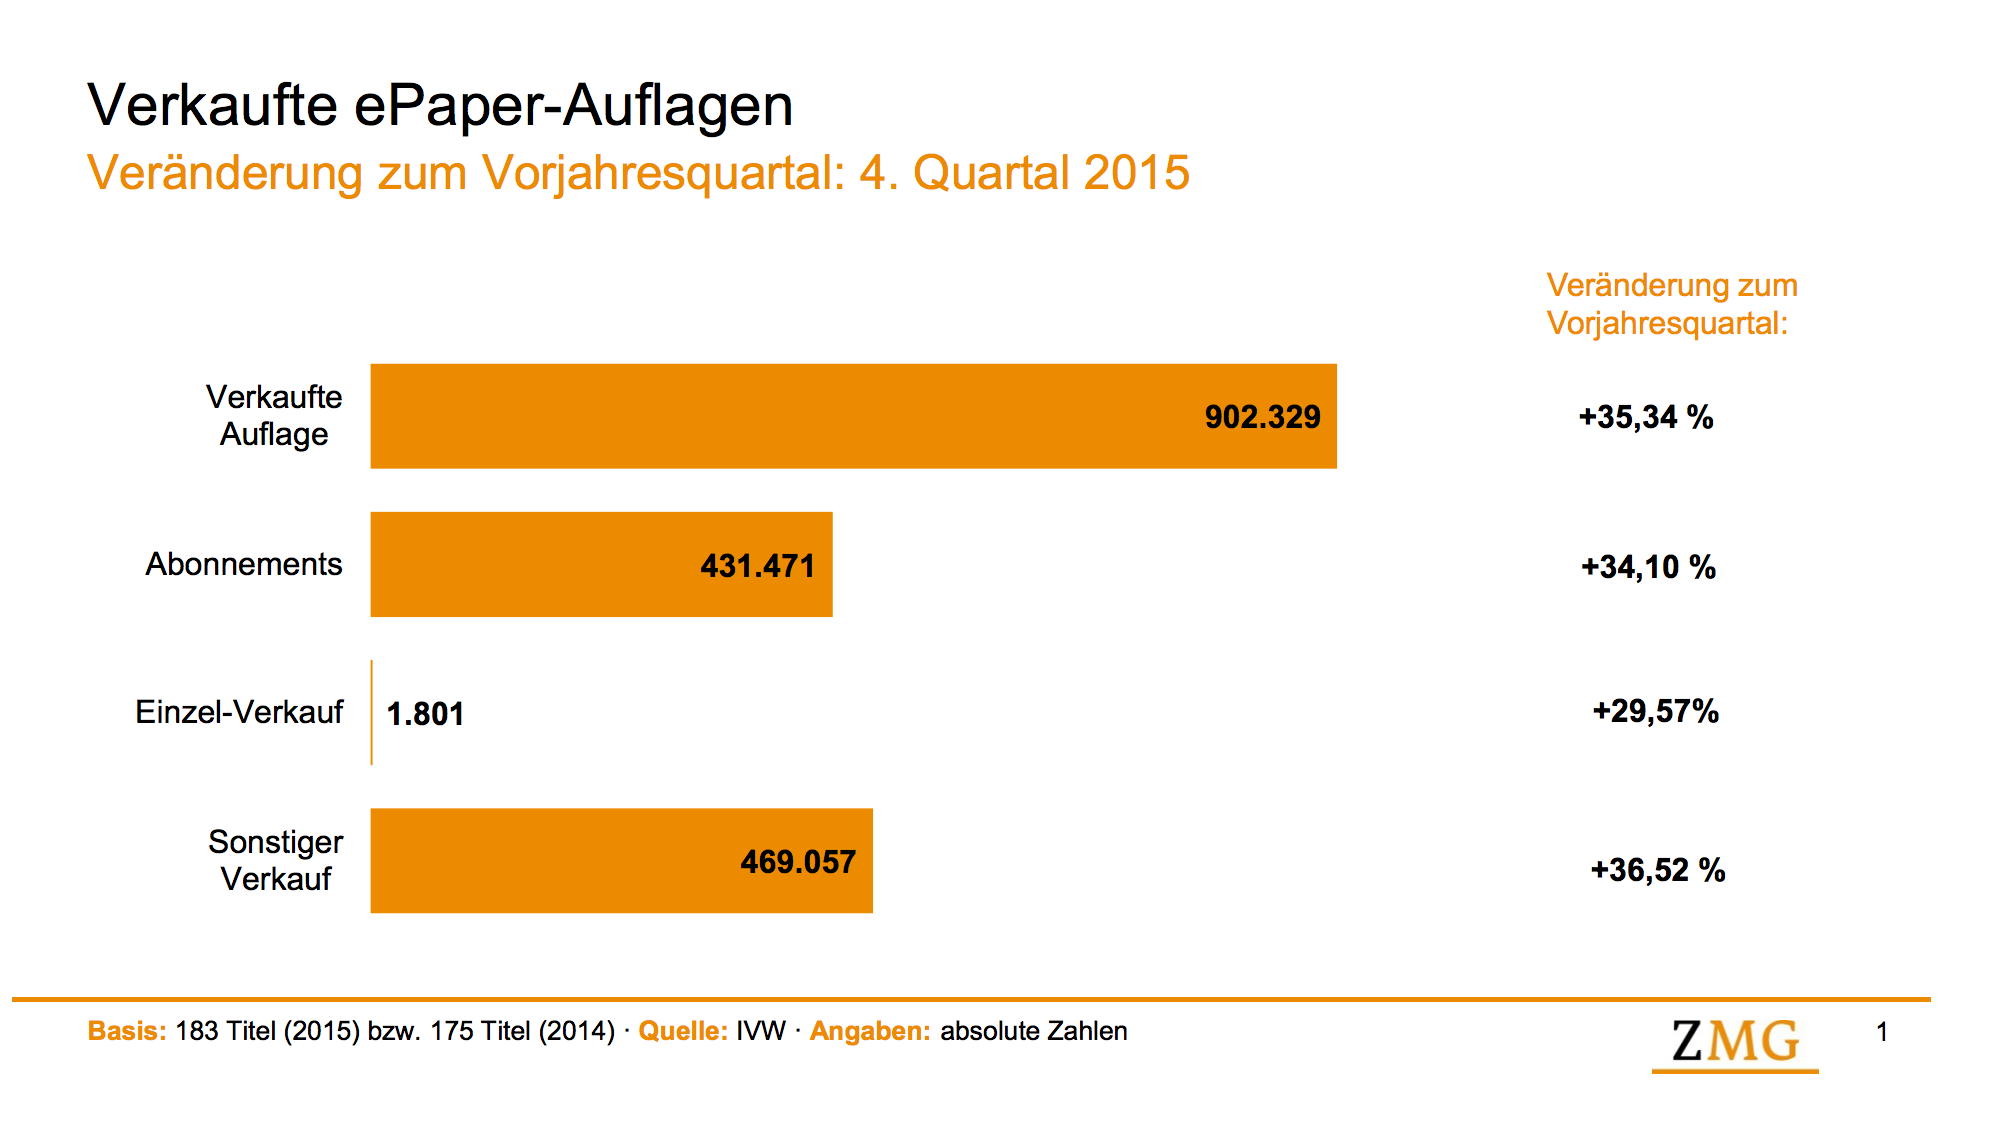 ePaper Sales Germany Q4 2015